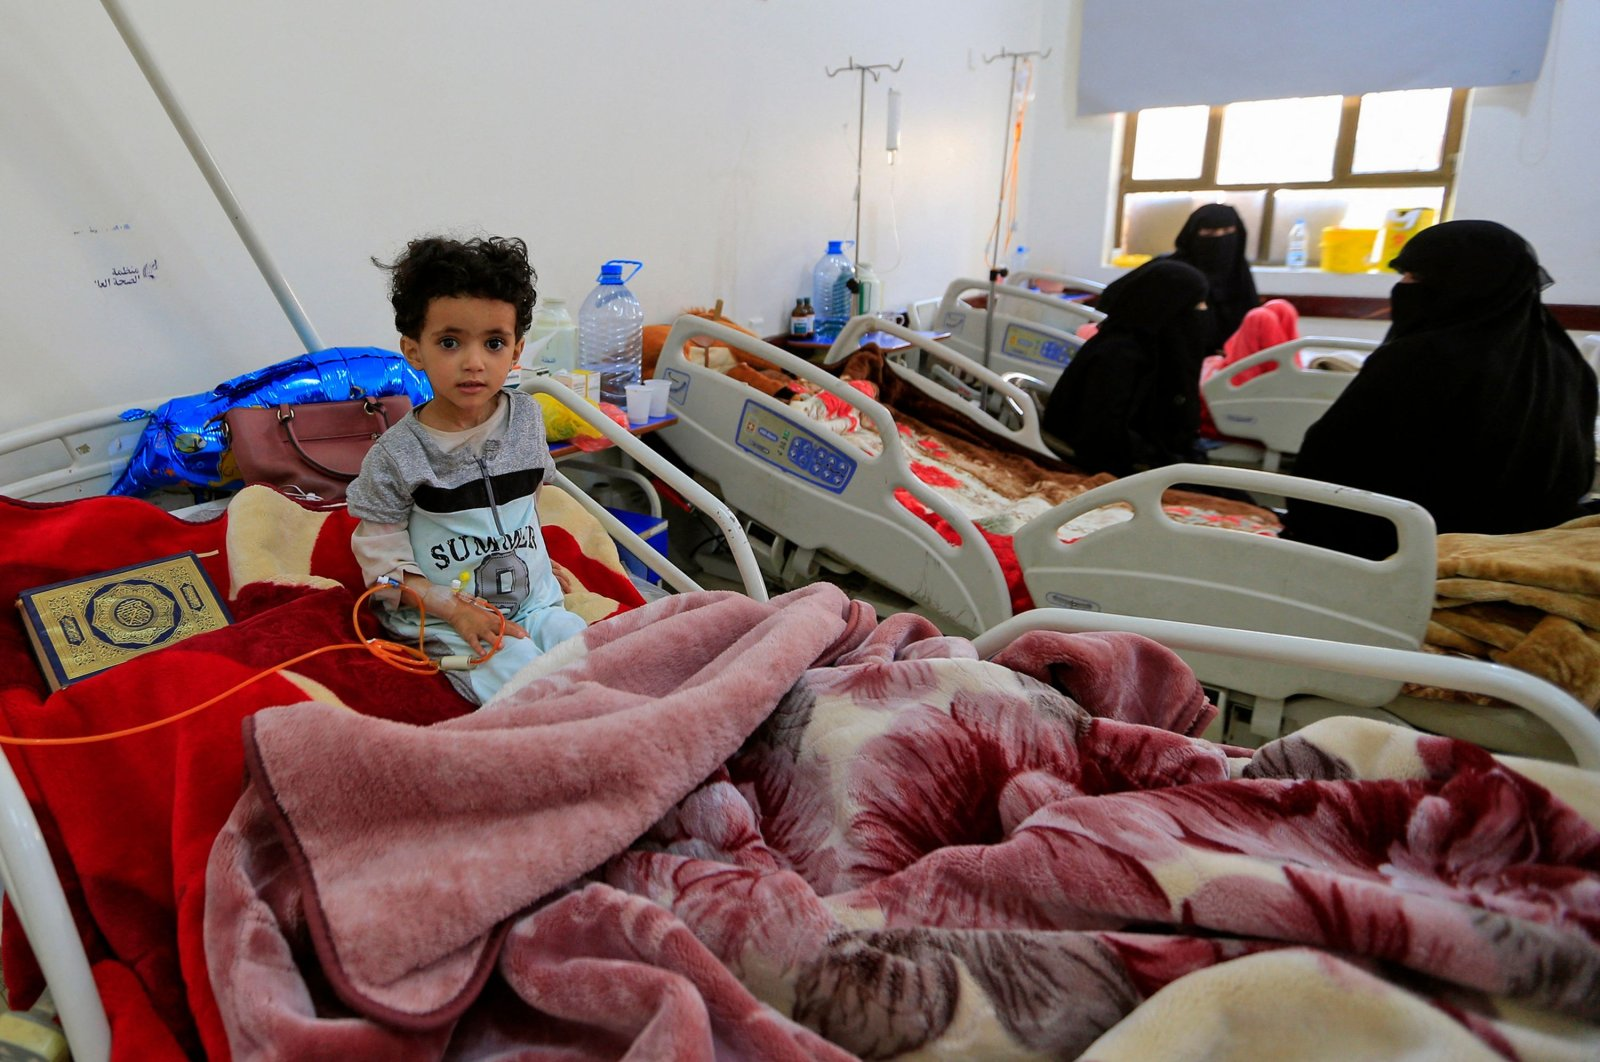 A young Yemeni cancer patient lies in bed as she receives treatment at the National Oncology Centre in the capital Sanaa, Yemen, March 3, 2021. (AFP Photo)